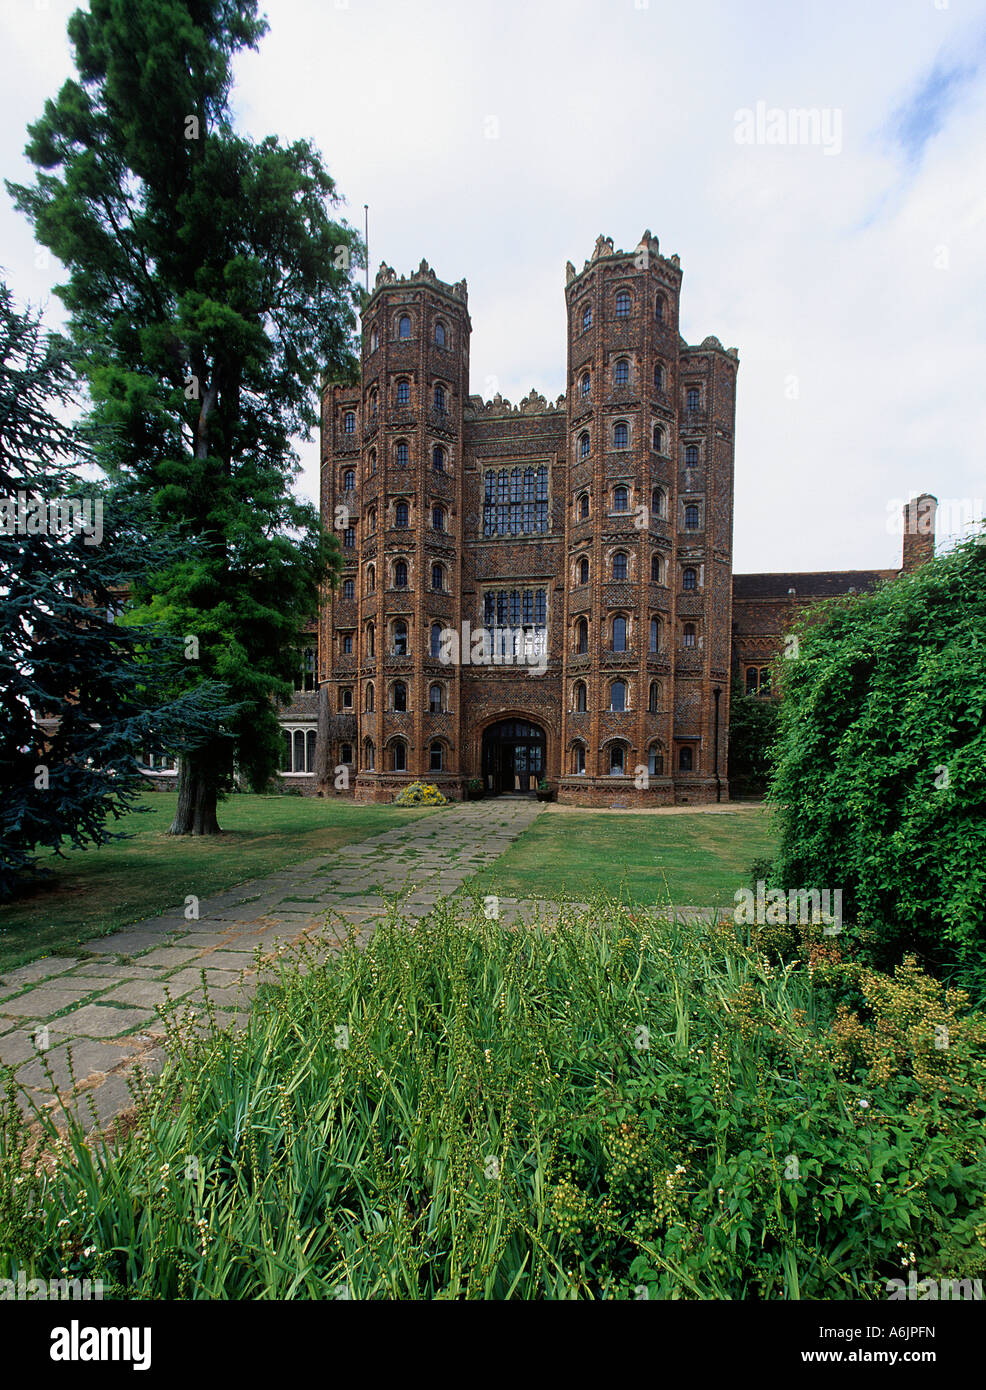 The 80 foot Tower at Layer Marney built in 1500 by Sir Henry Marney who died in 1523 Seven miles SW of Colchester - Stock Image